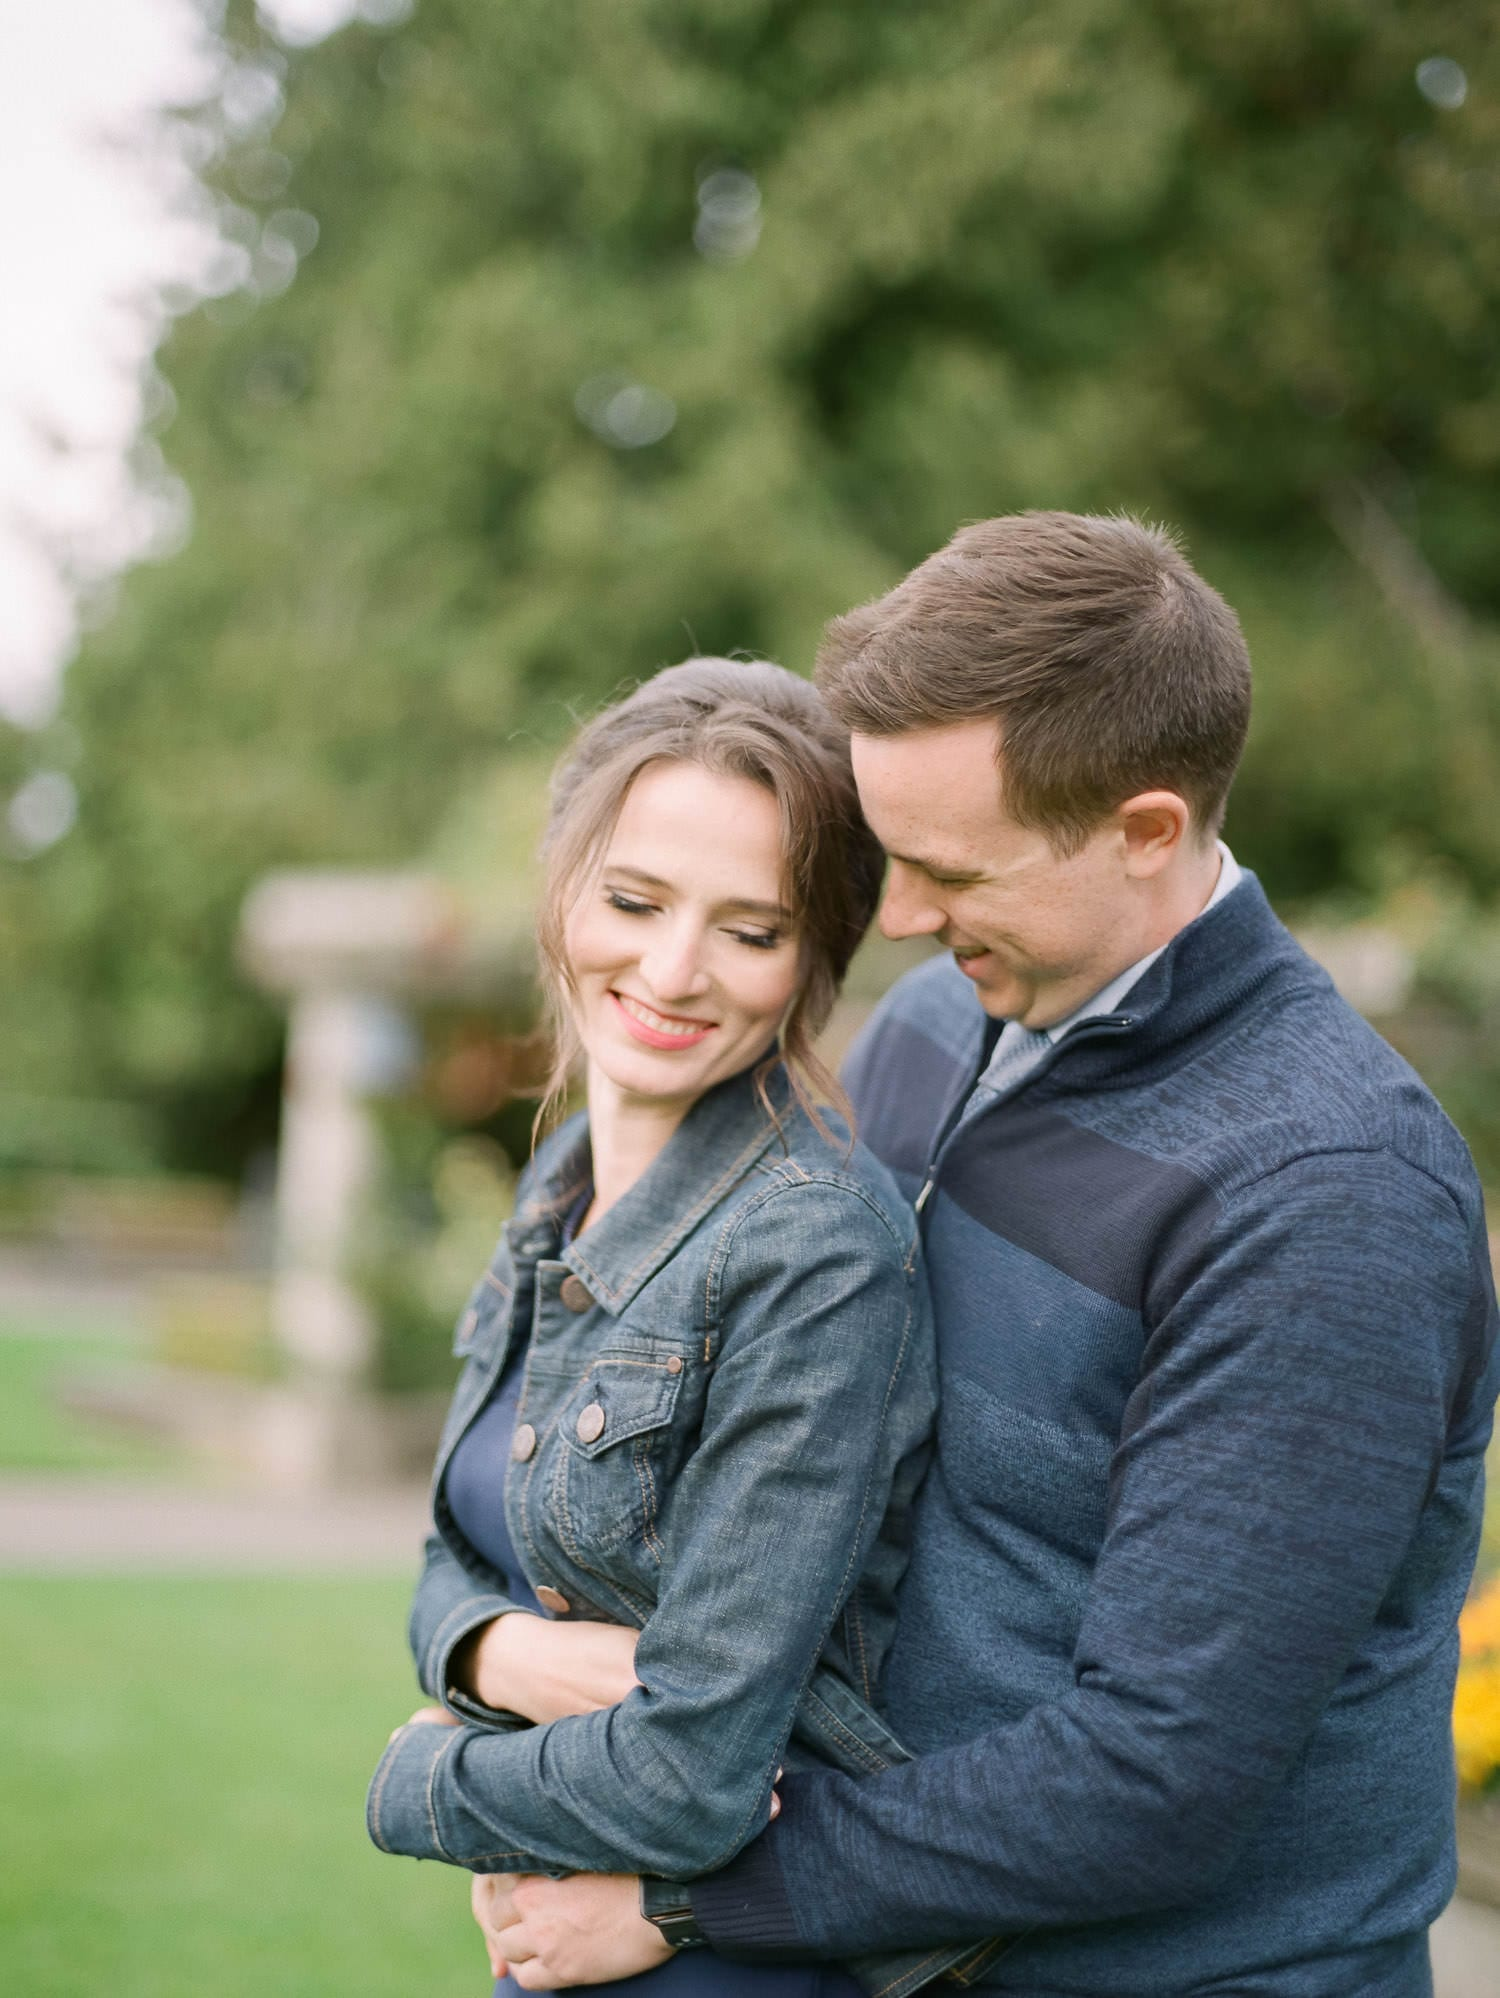 Engagement photo at UBC Rose Garden | Vancouver Fine Art Wedding Photographer